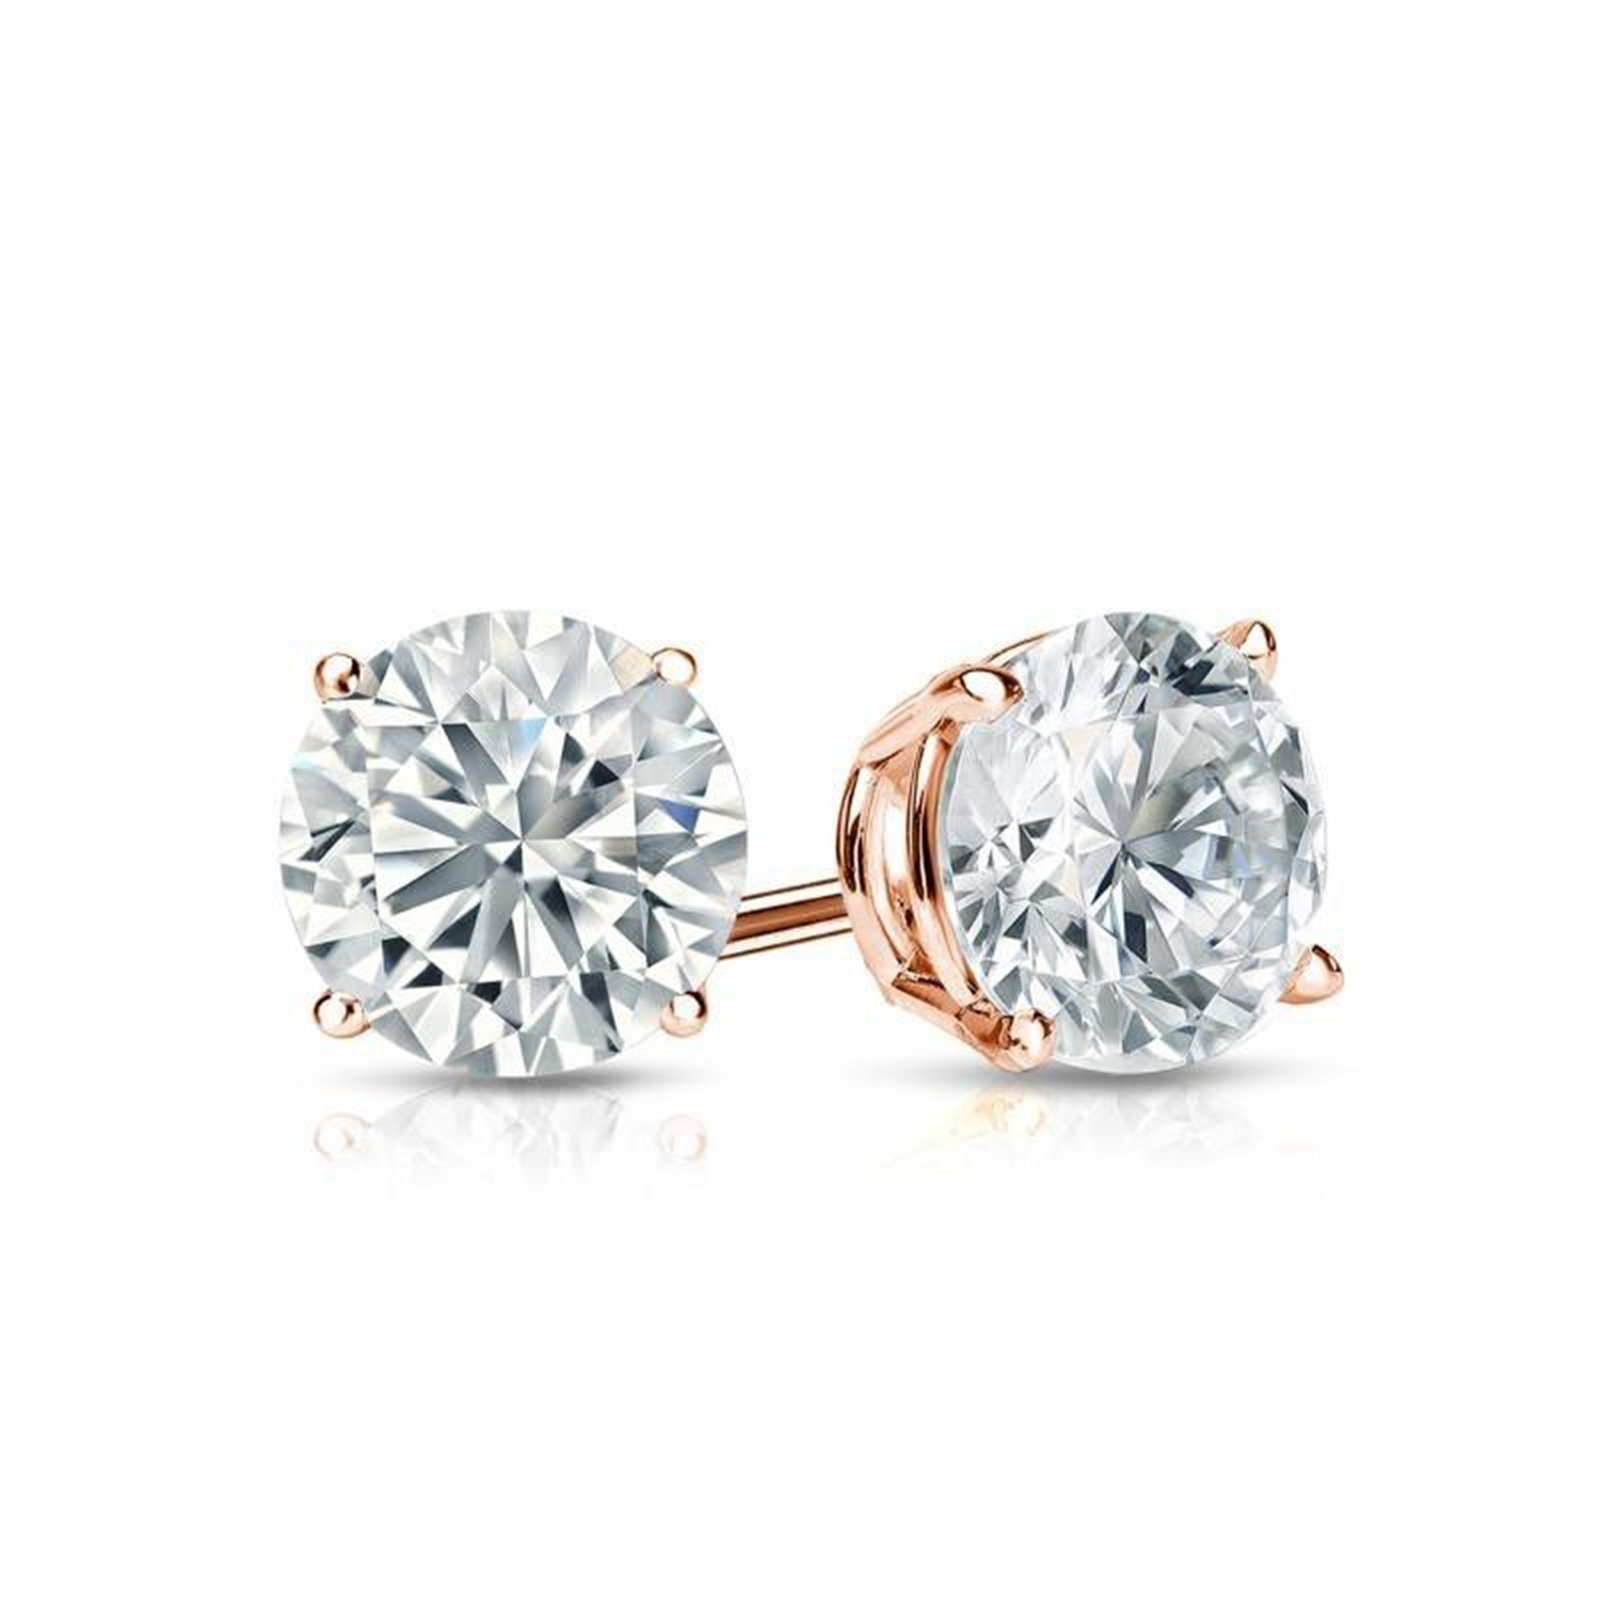 2.0 ct Round Brilliant Cut Simulated Diamond CZ Solitaire Stud Earrings in 14k Rose Gold Screw Back